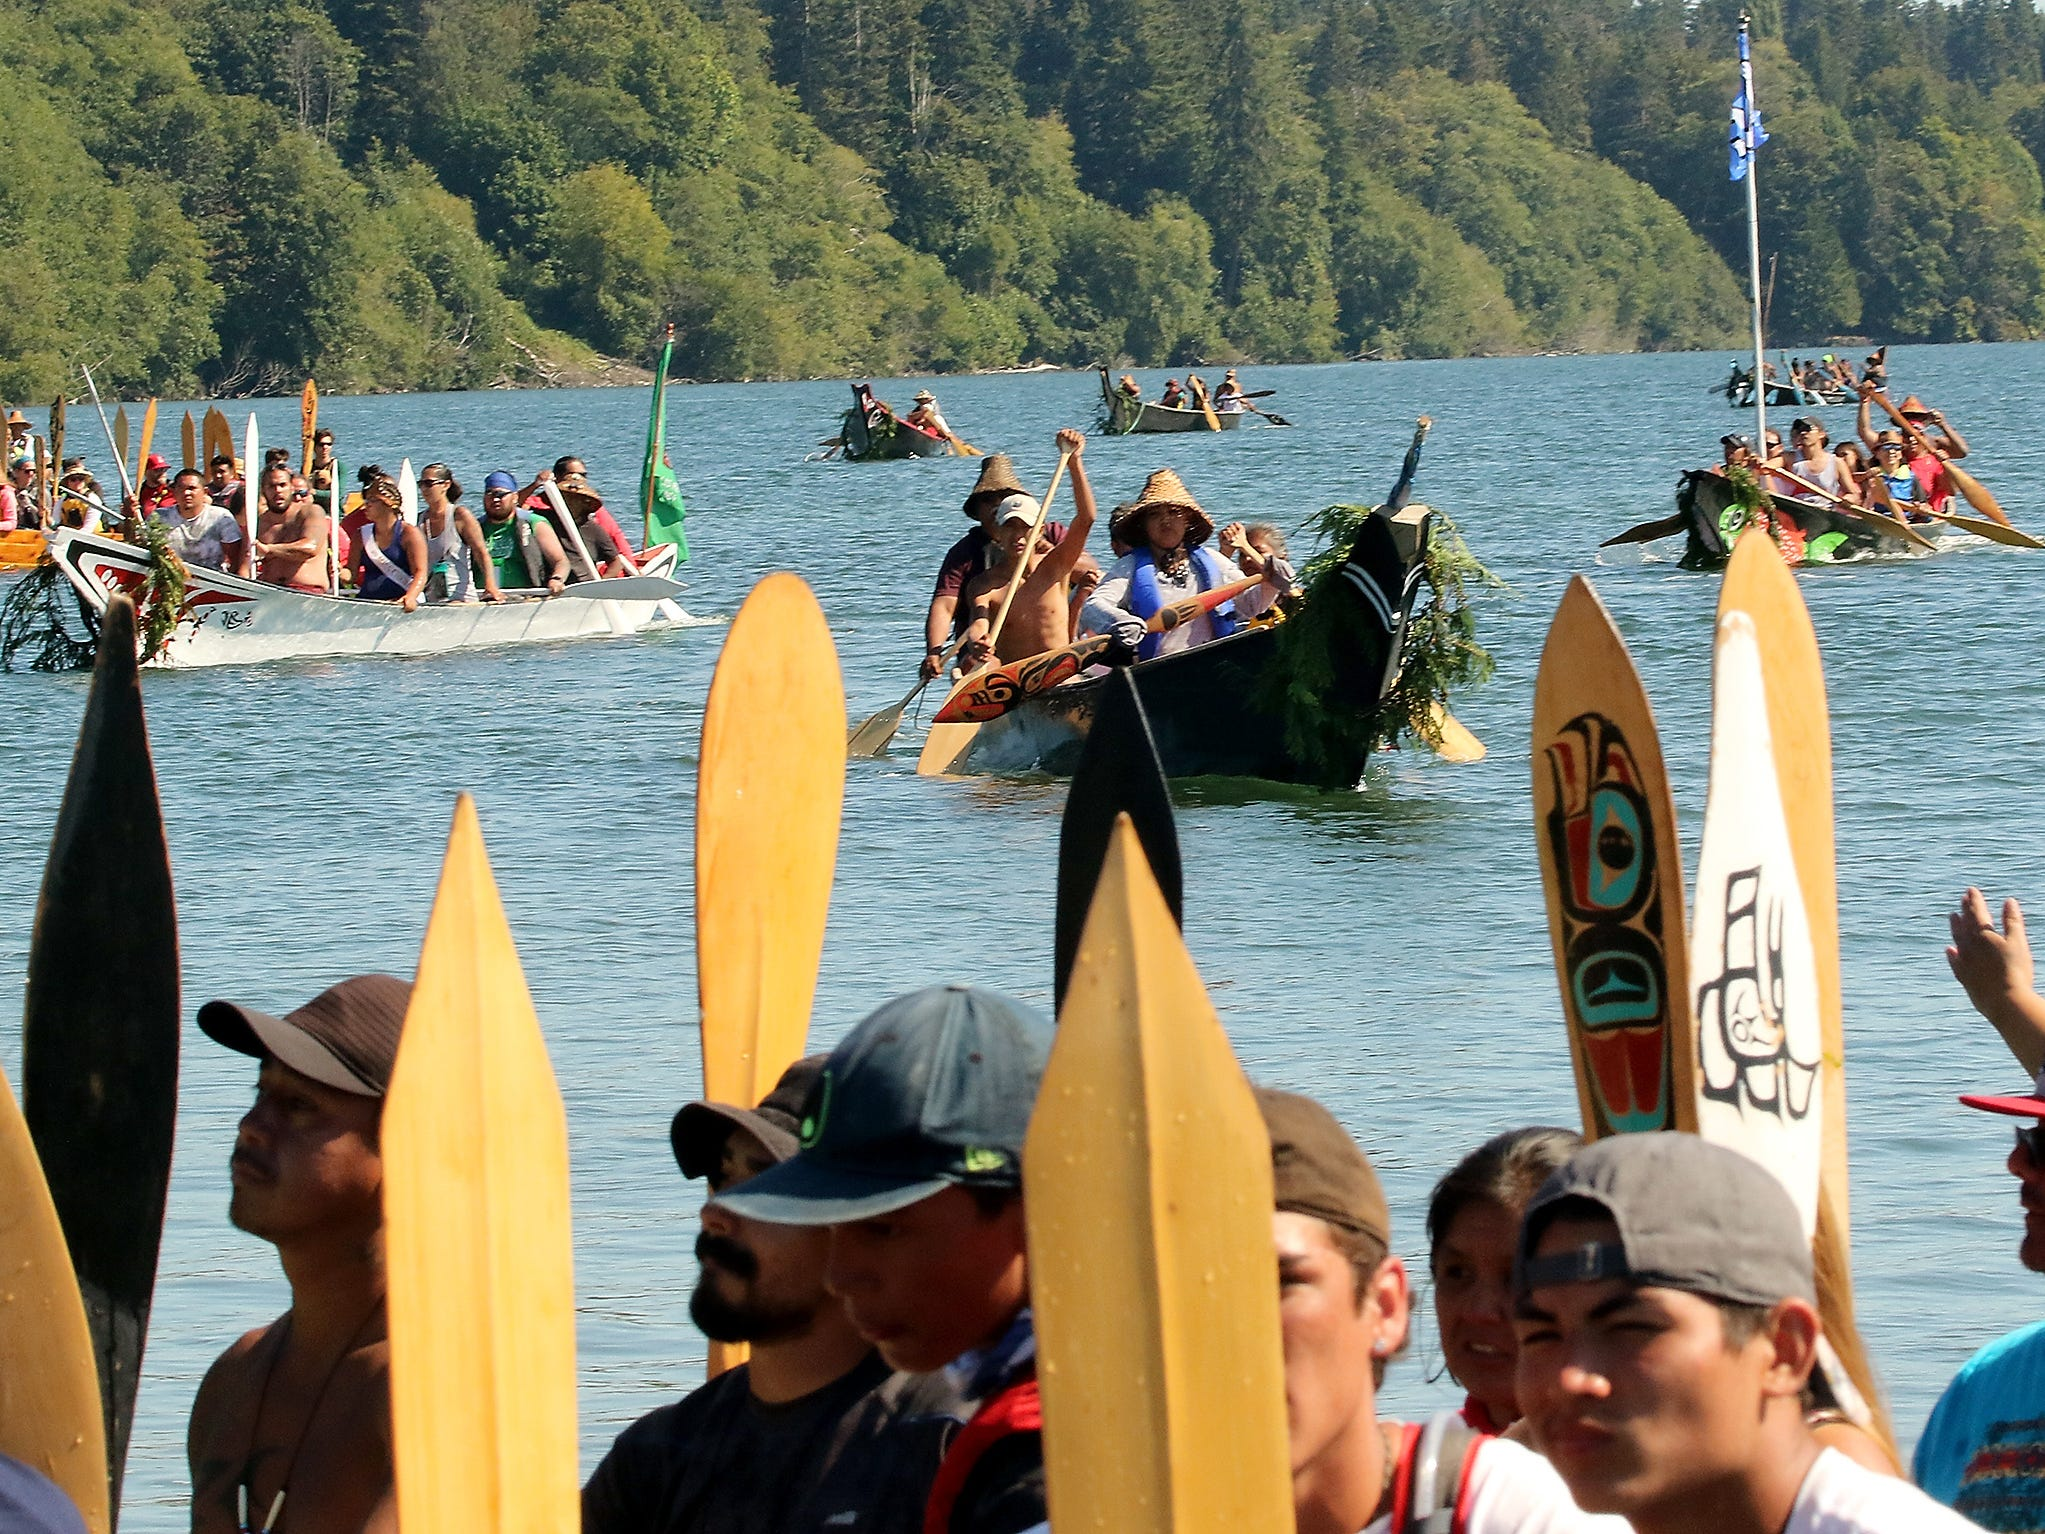 "Tribal Canoe Journey ""Paddle to Puyallup"" canoes head for the shore to ask and await permission from the Port Gamble S'Klallam Tribe to come ashore at Point Julia, Washington on Tuesday, July 24, 2018."